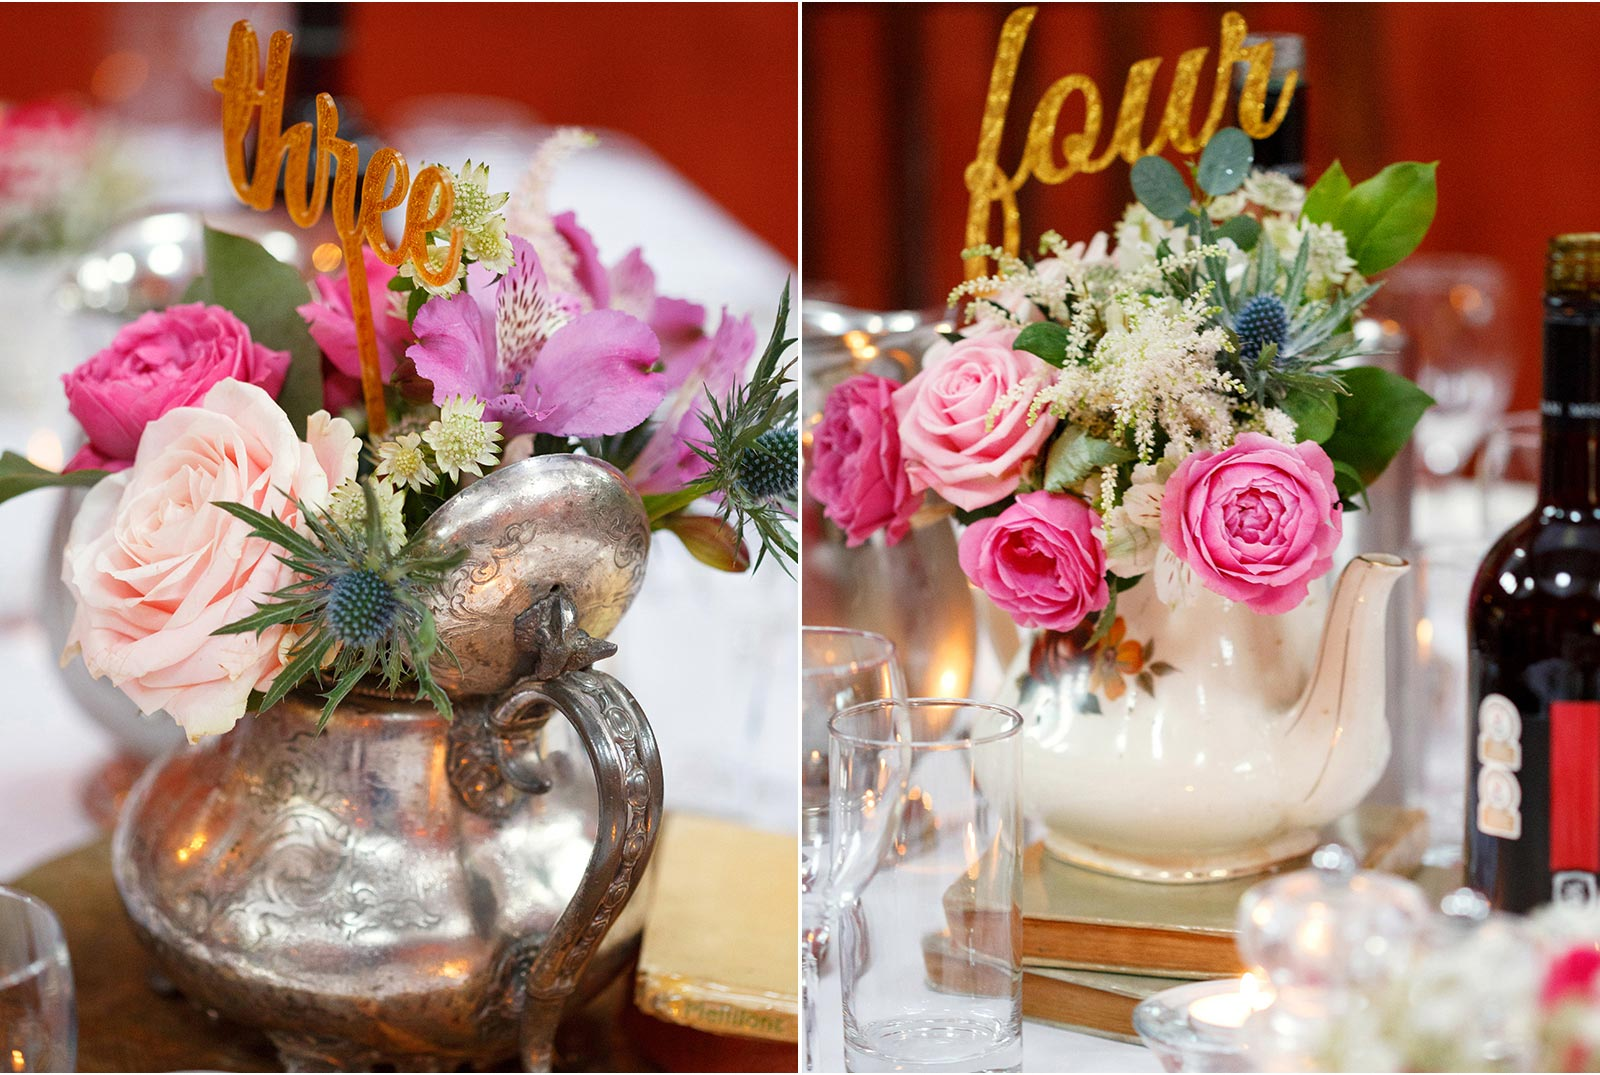 pink wedding decor wiht flowers and teapots